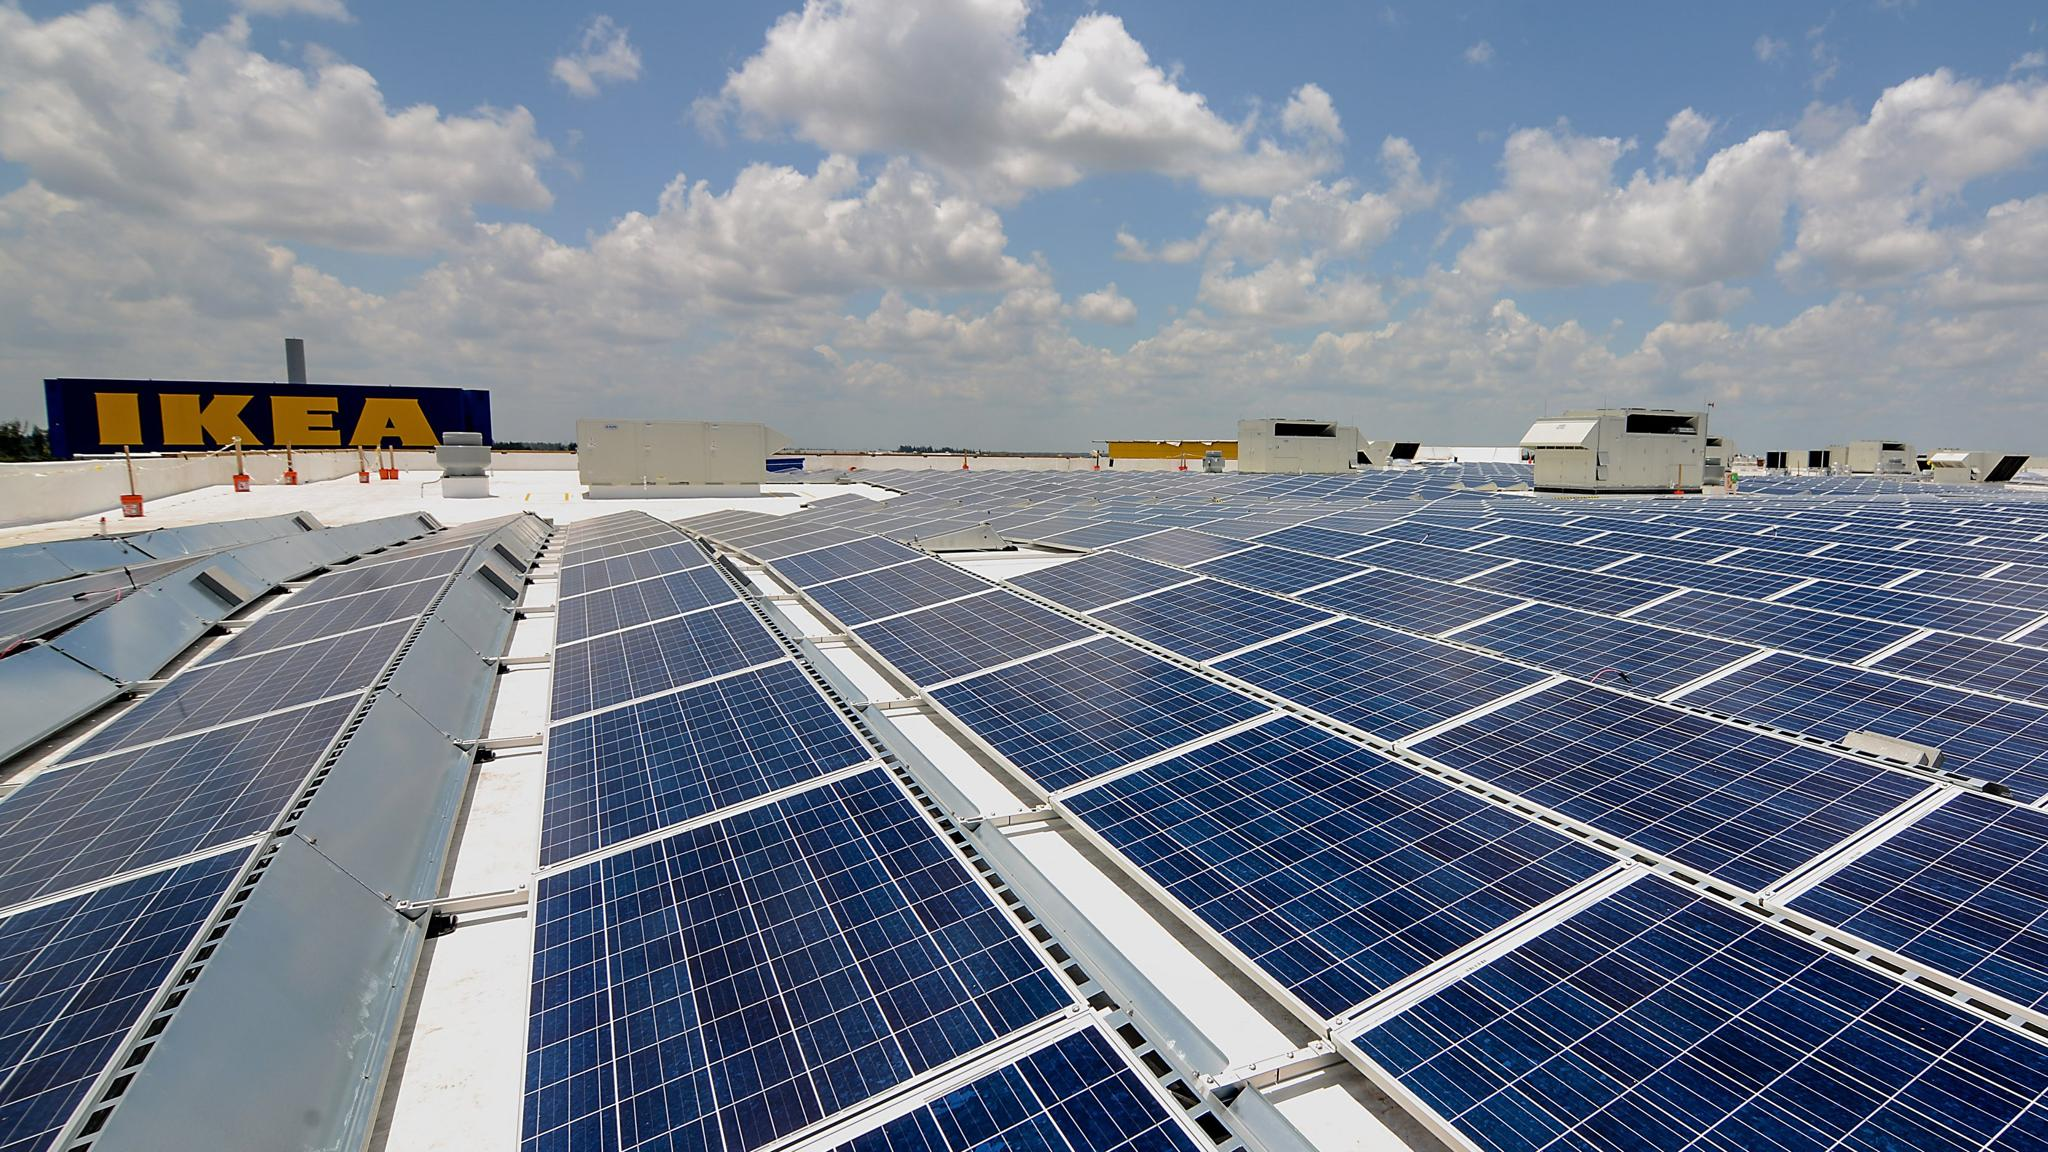 Ikea Ends Residential Solar Panel Deal With Hanergy Financial Times